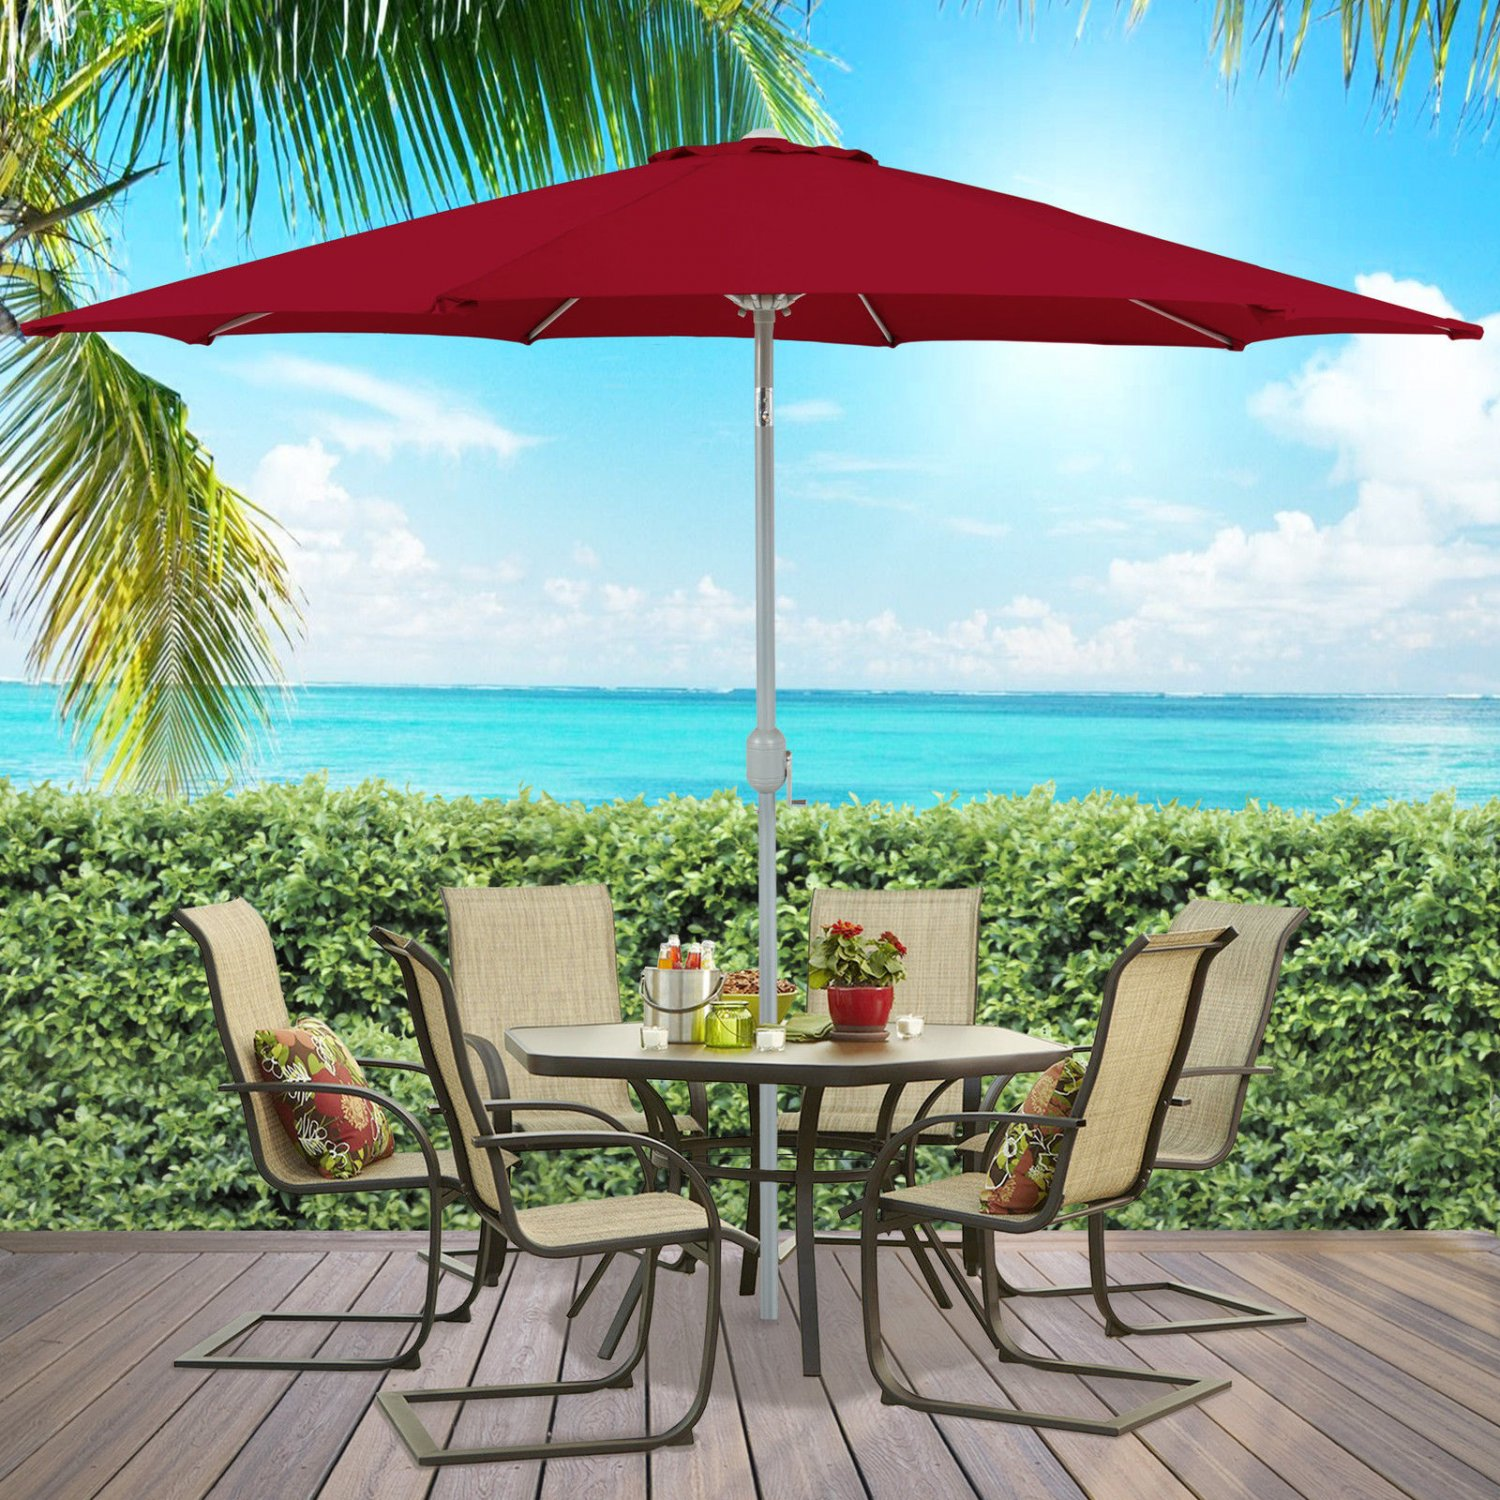 Patio Umbrella 9' Aluminum Patio Market Umbrella Tilt W/ Crank Outdoor Red